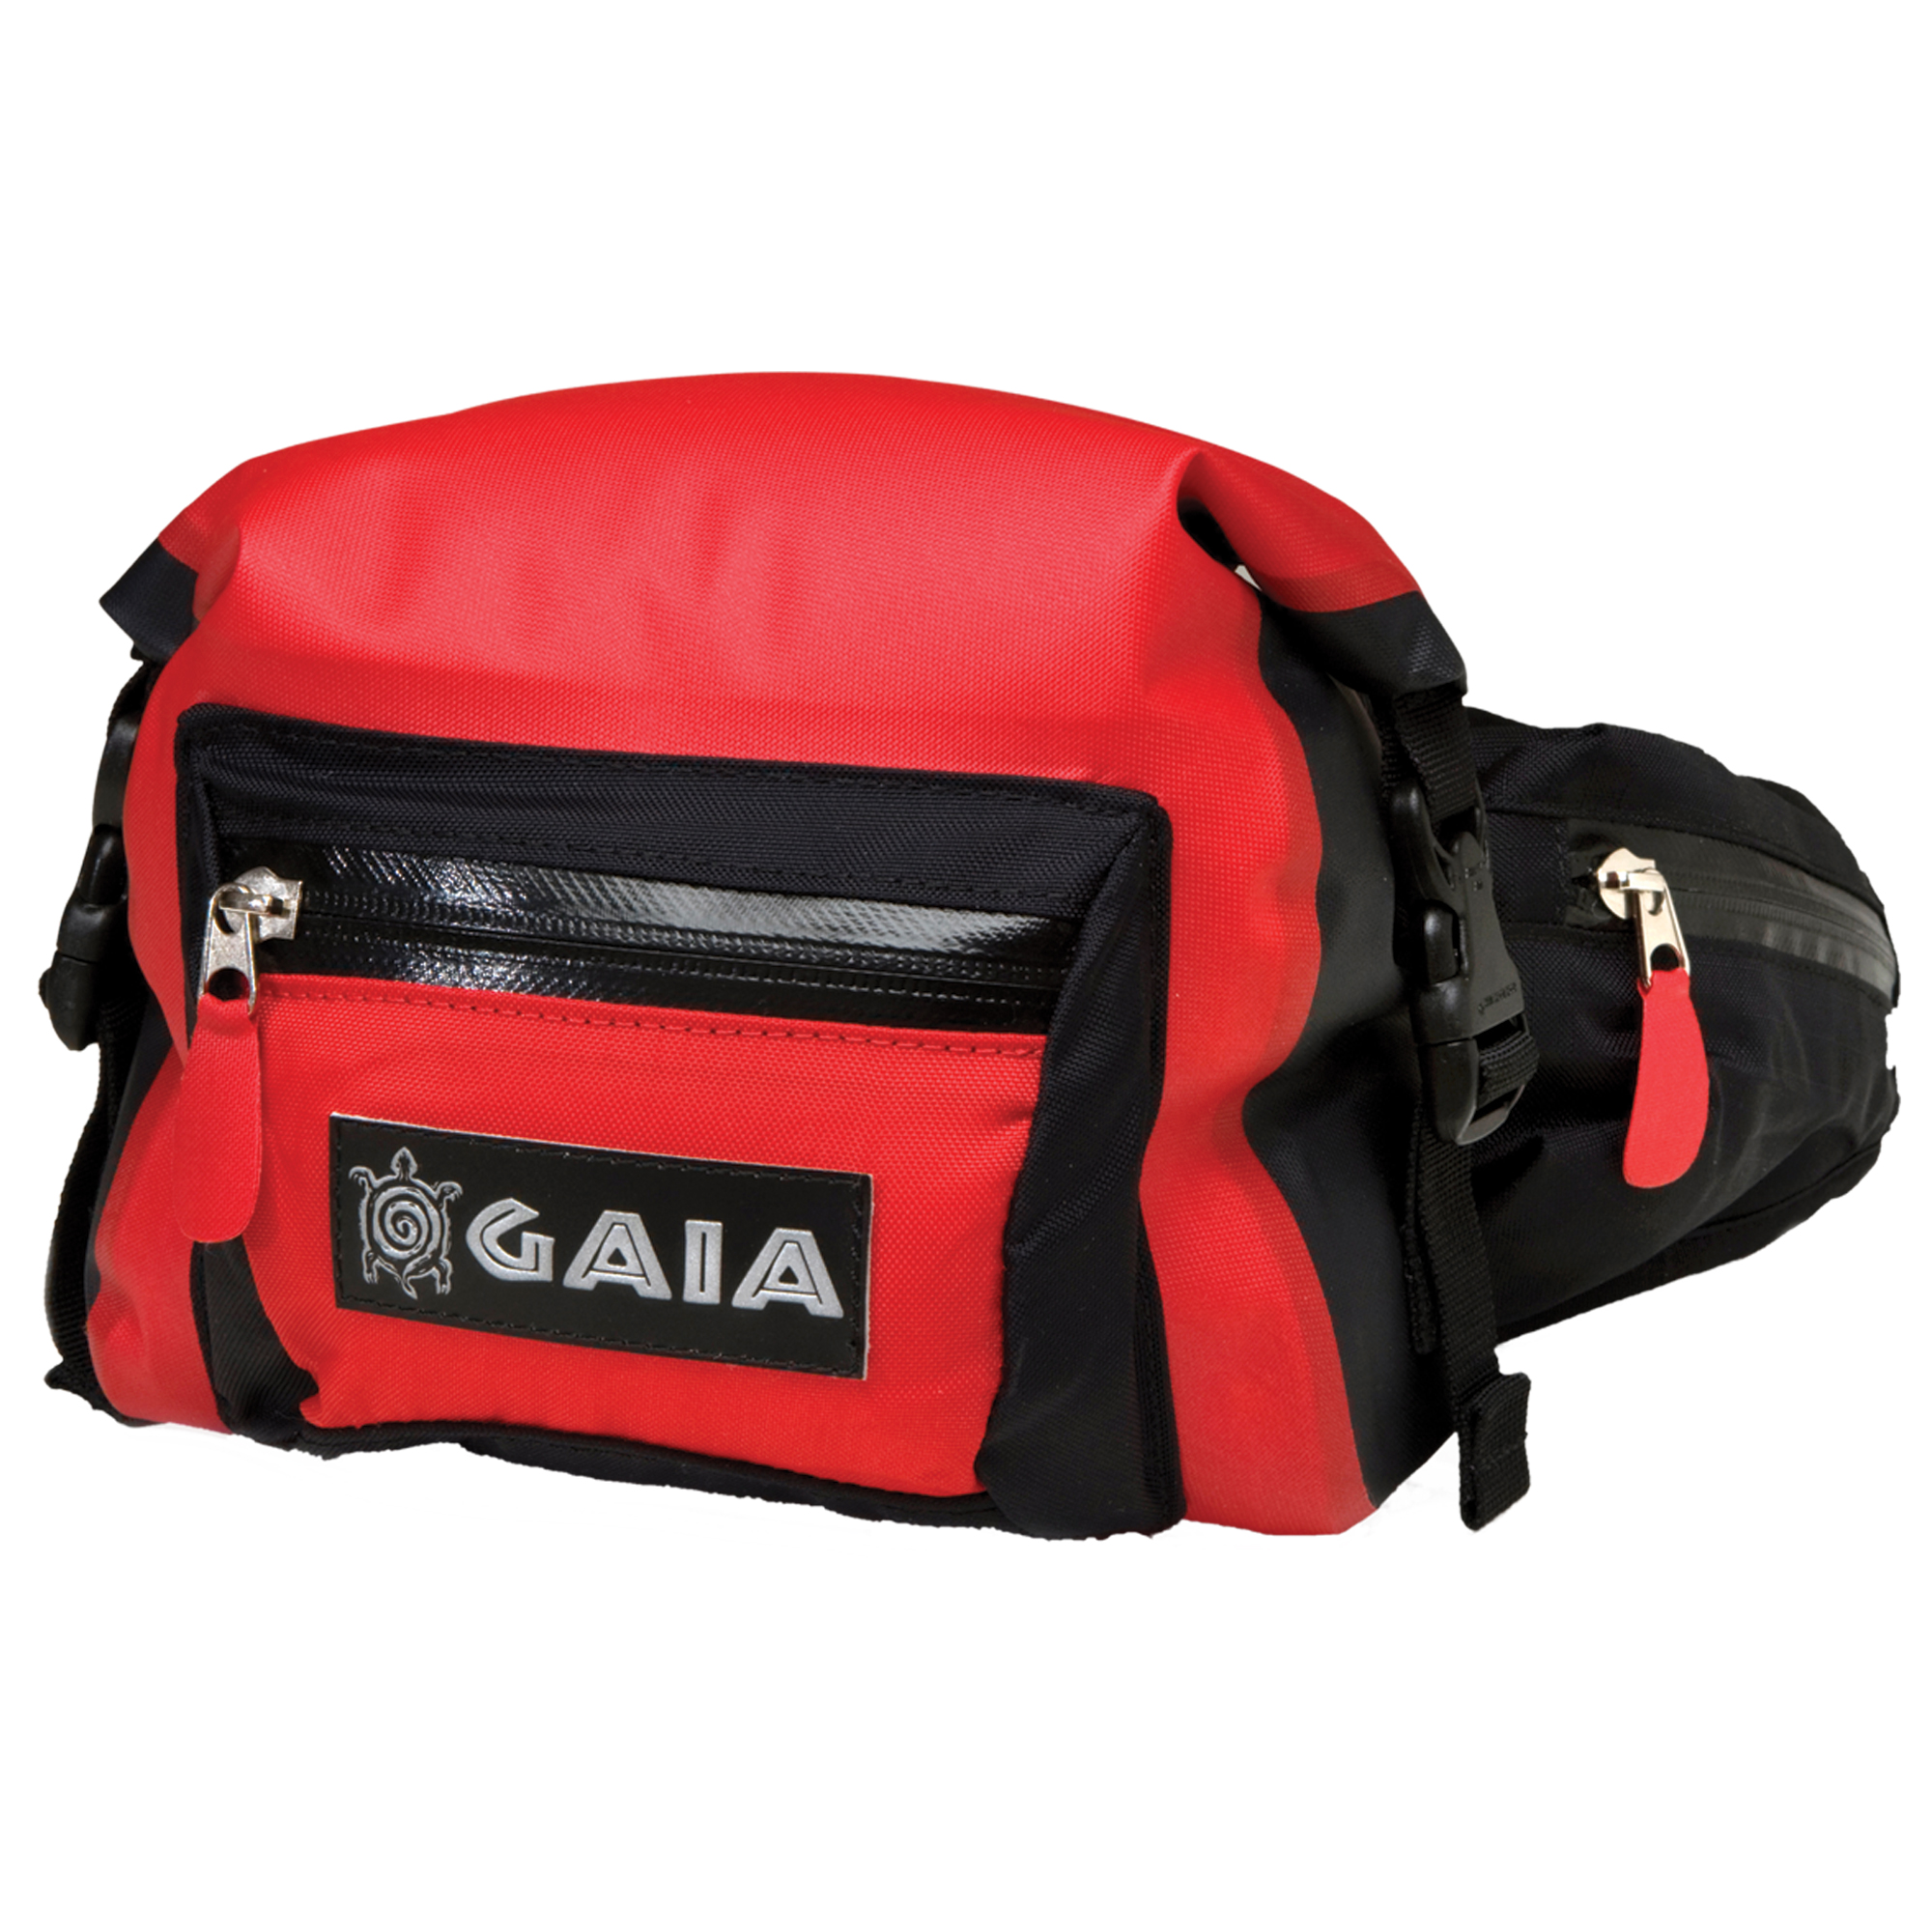 GAIA Waterproof Hip Pack